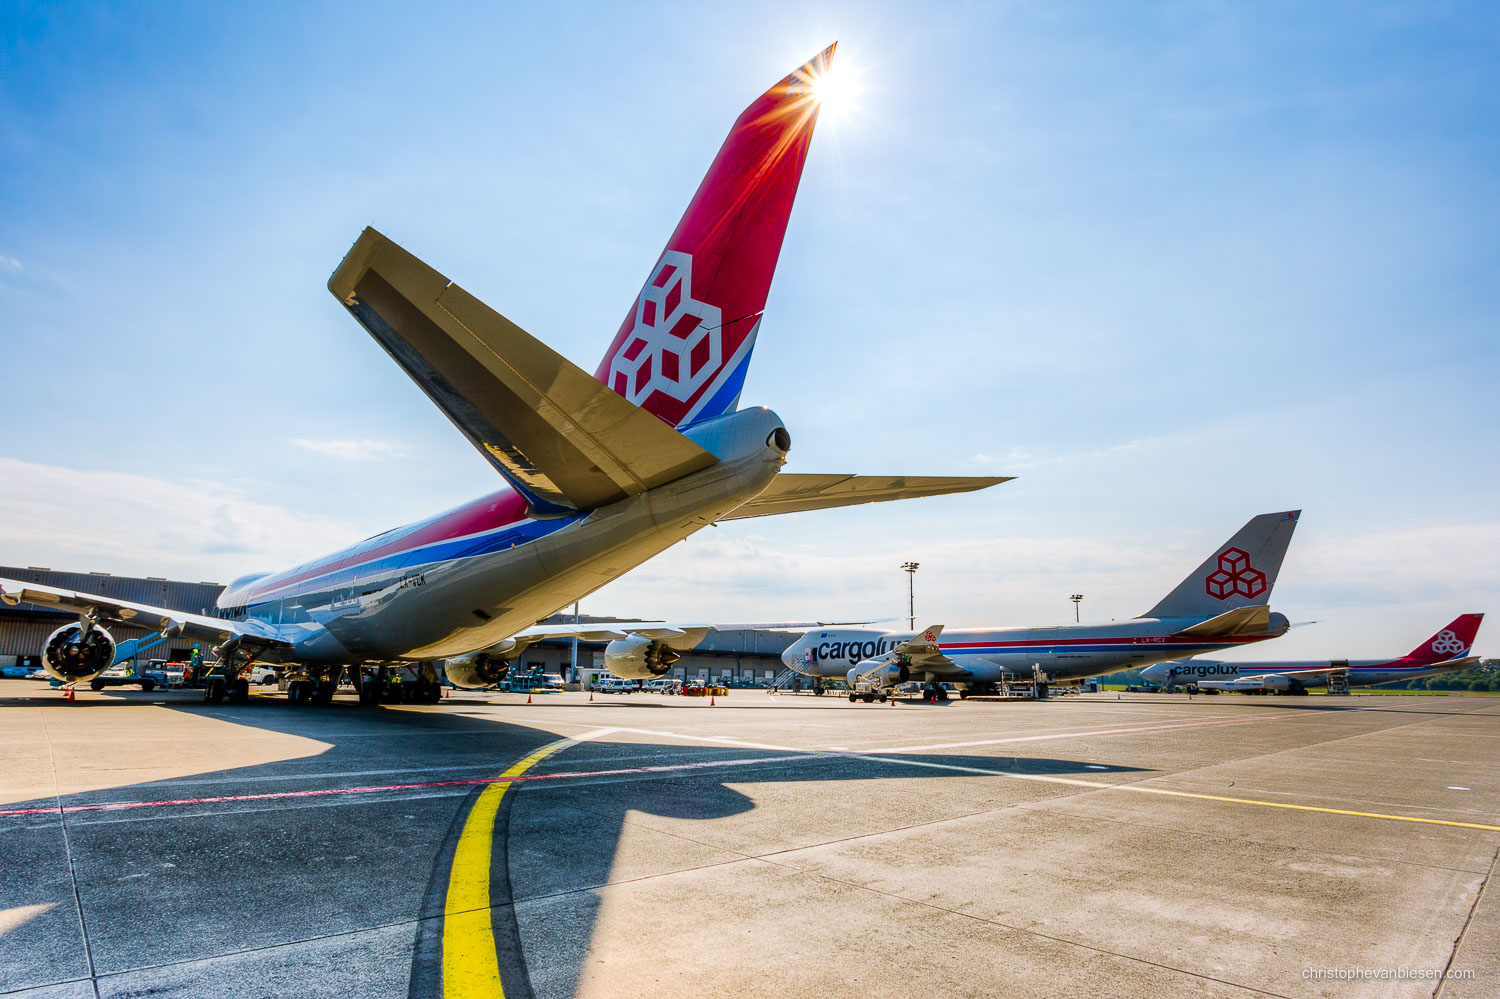 Work with me - Commission Work - Boeing 747 of Luxembourg's Cargolux fleet - Giants - Photography by Christophe Van Biesen - Luxembourg Landscape and Travel Photographer